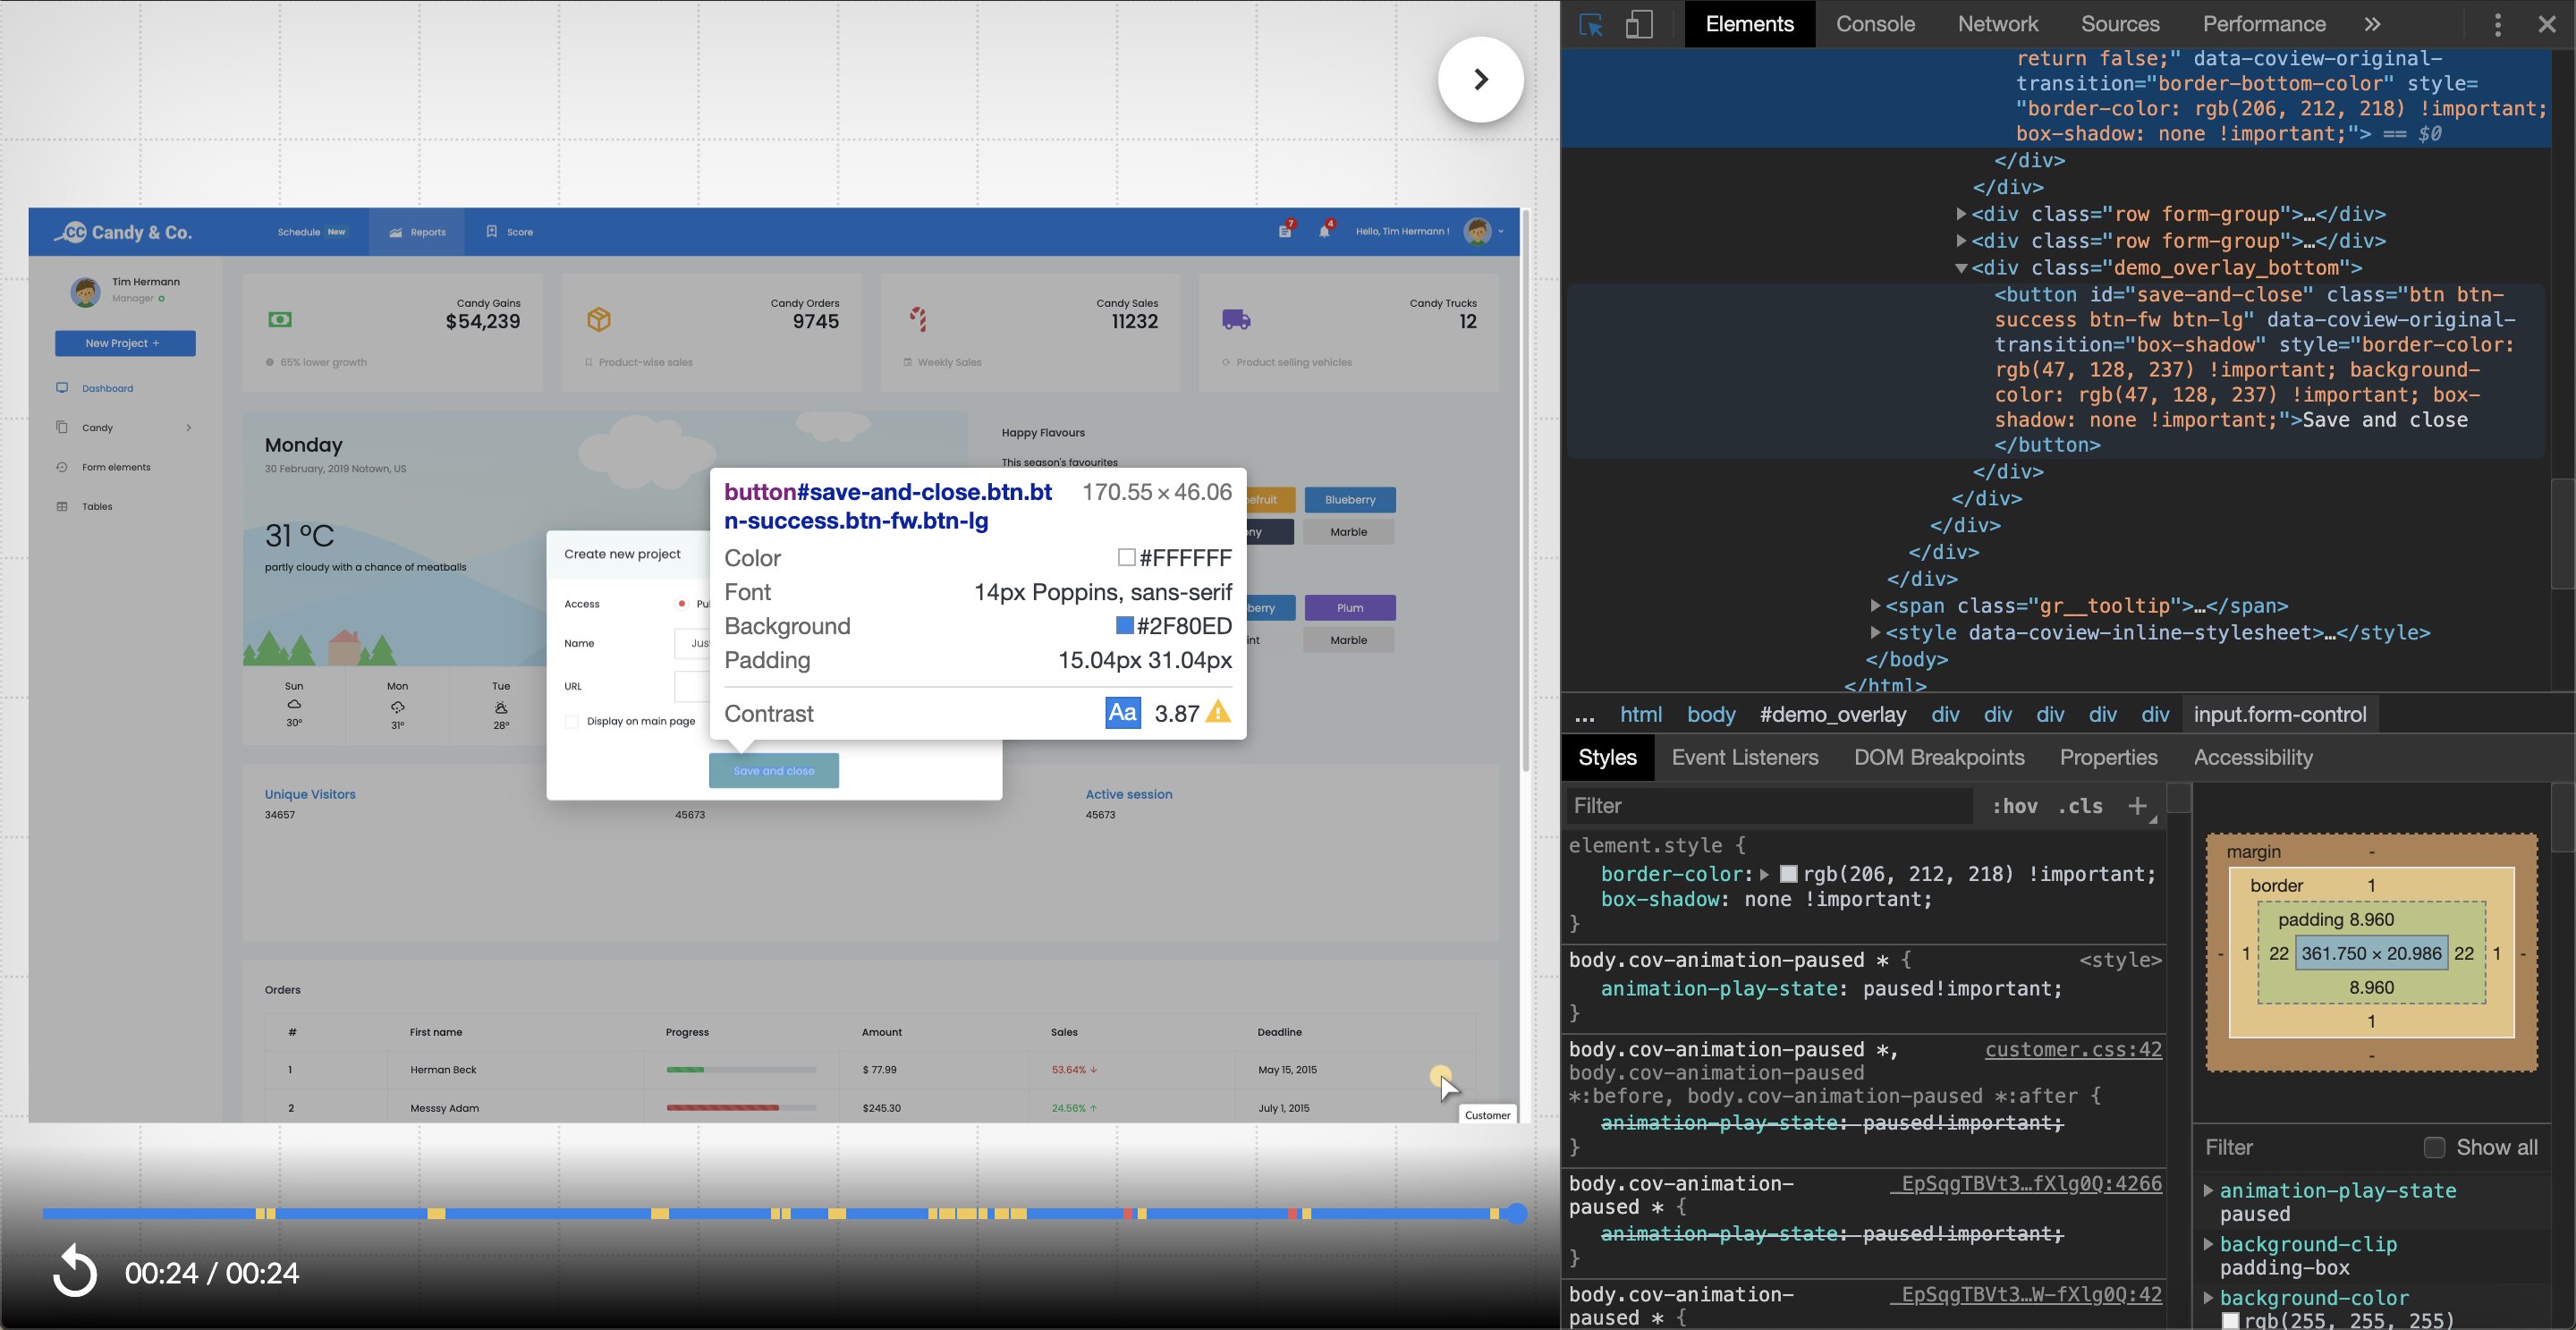 Inspecting the recording with browser's devtools.